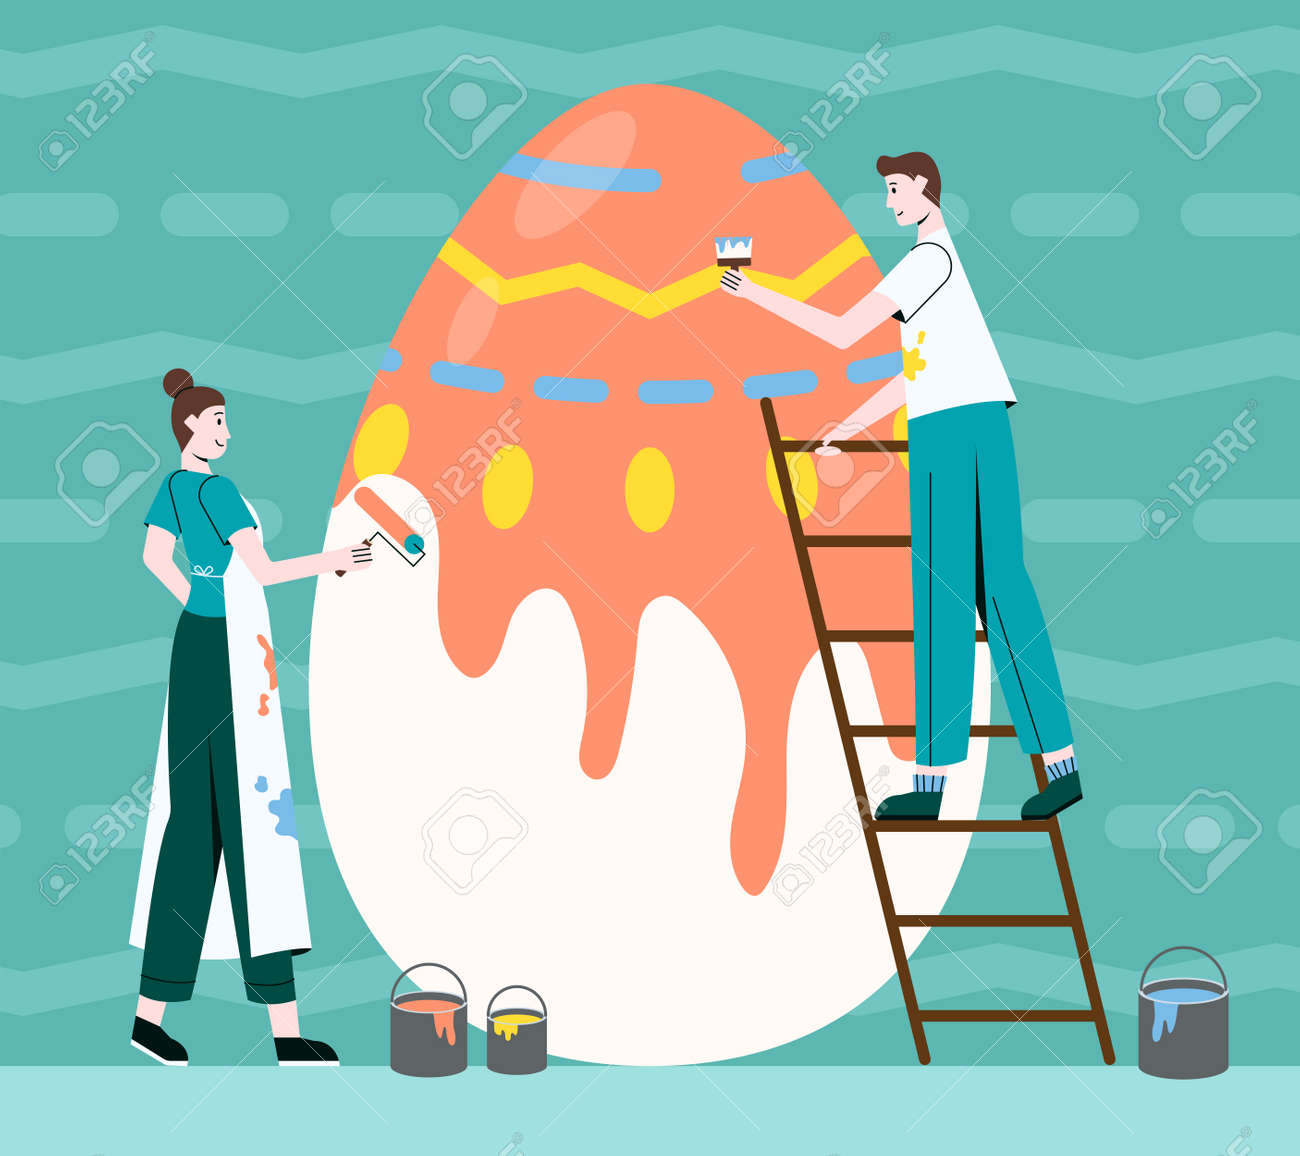 Colourful illustration of the Happy Easter egg - 165450969